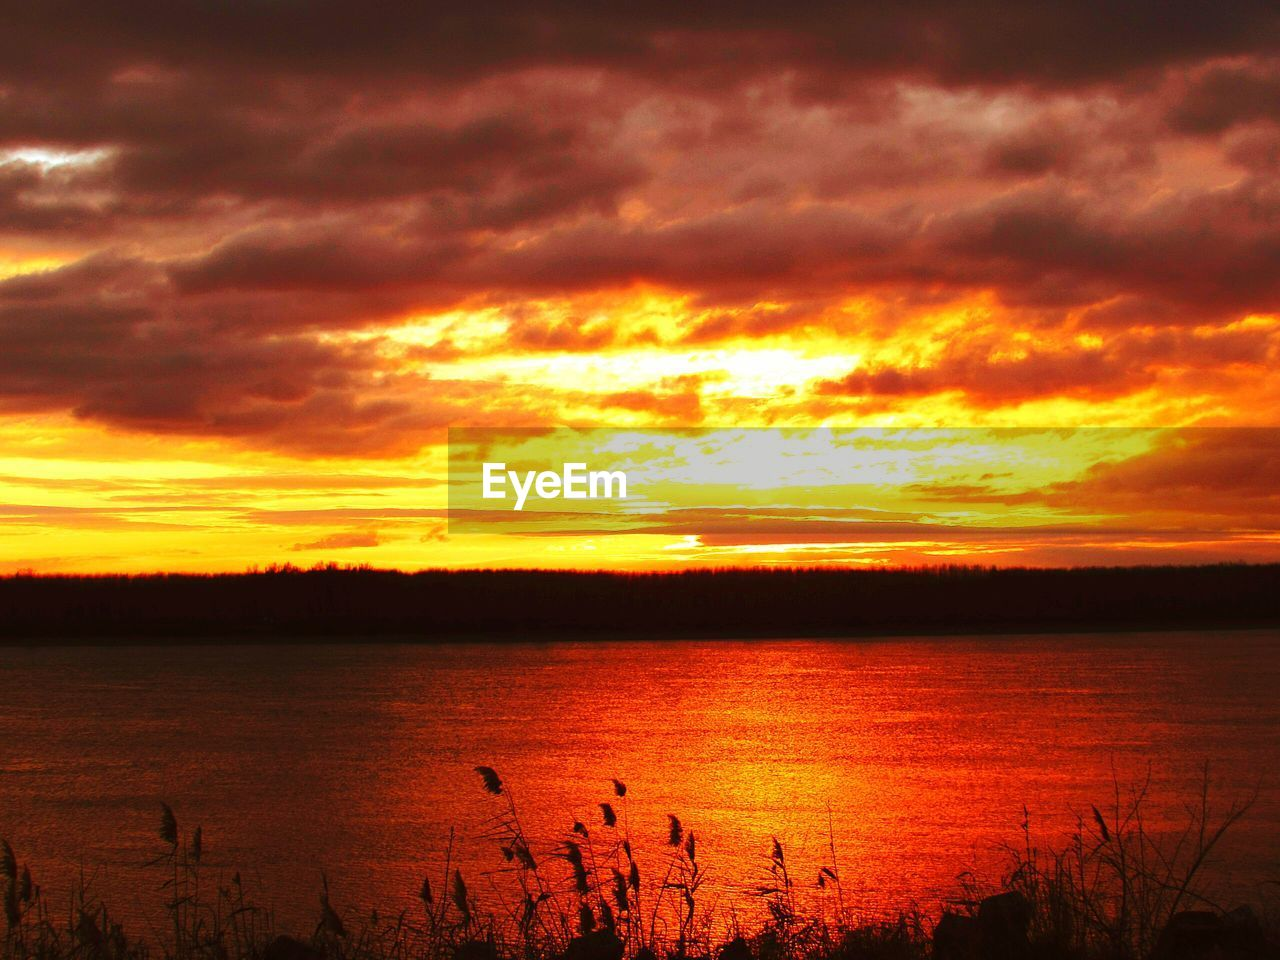 sunset, sky, cloud - sky, water, beauty in nature, scenics - nature, orange color, tranquility, tranquil scene, idyllic, silhouette, nature, no people, reflection, lake, non-urban scene, majestic, awe, romantic sky